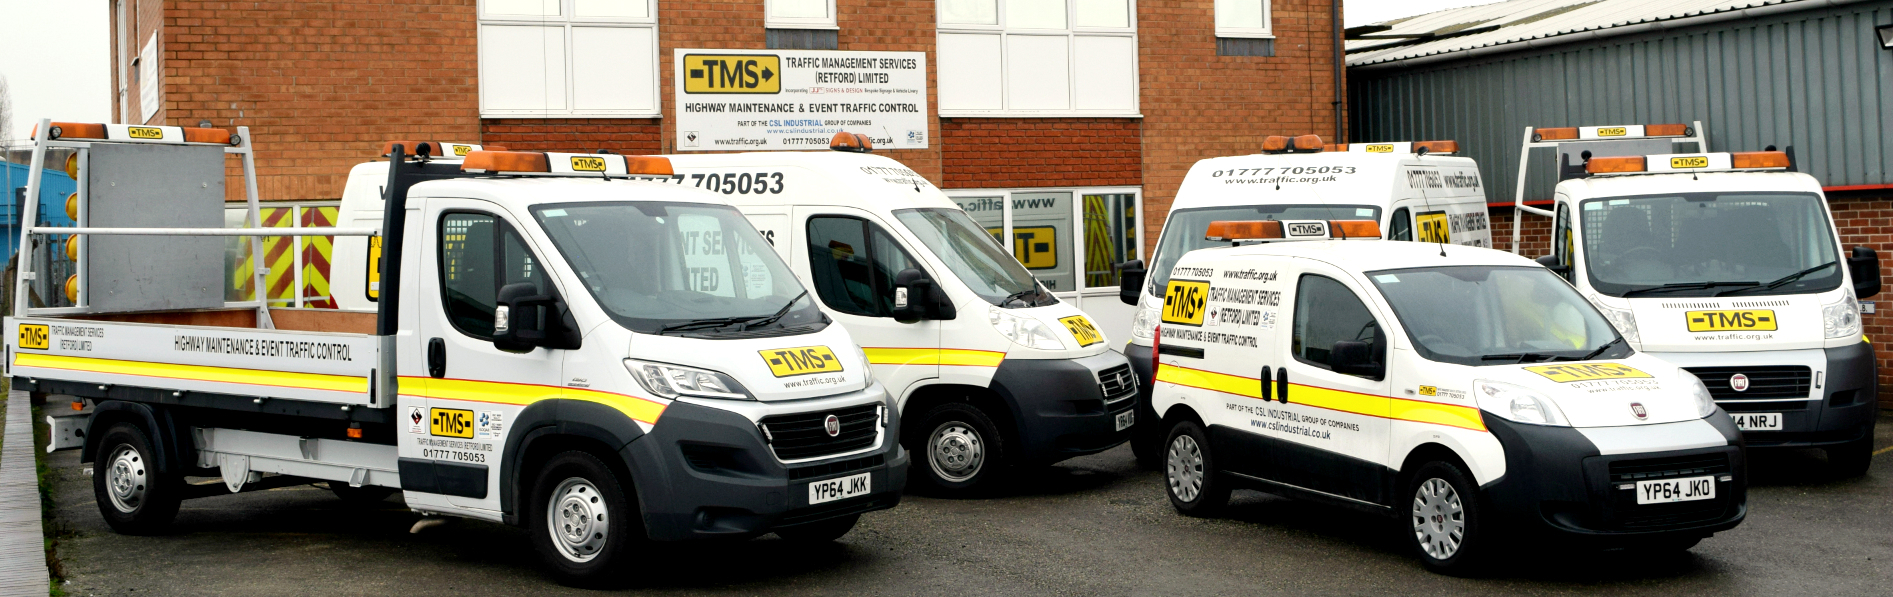 TMS-Companyy-Building-with-Van-Workforce